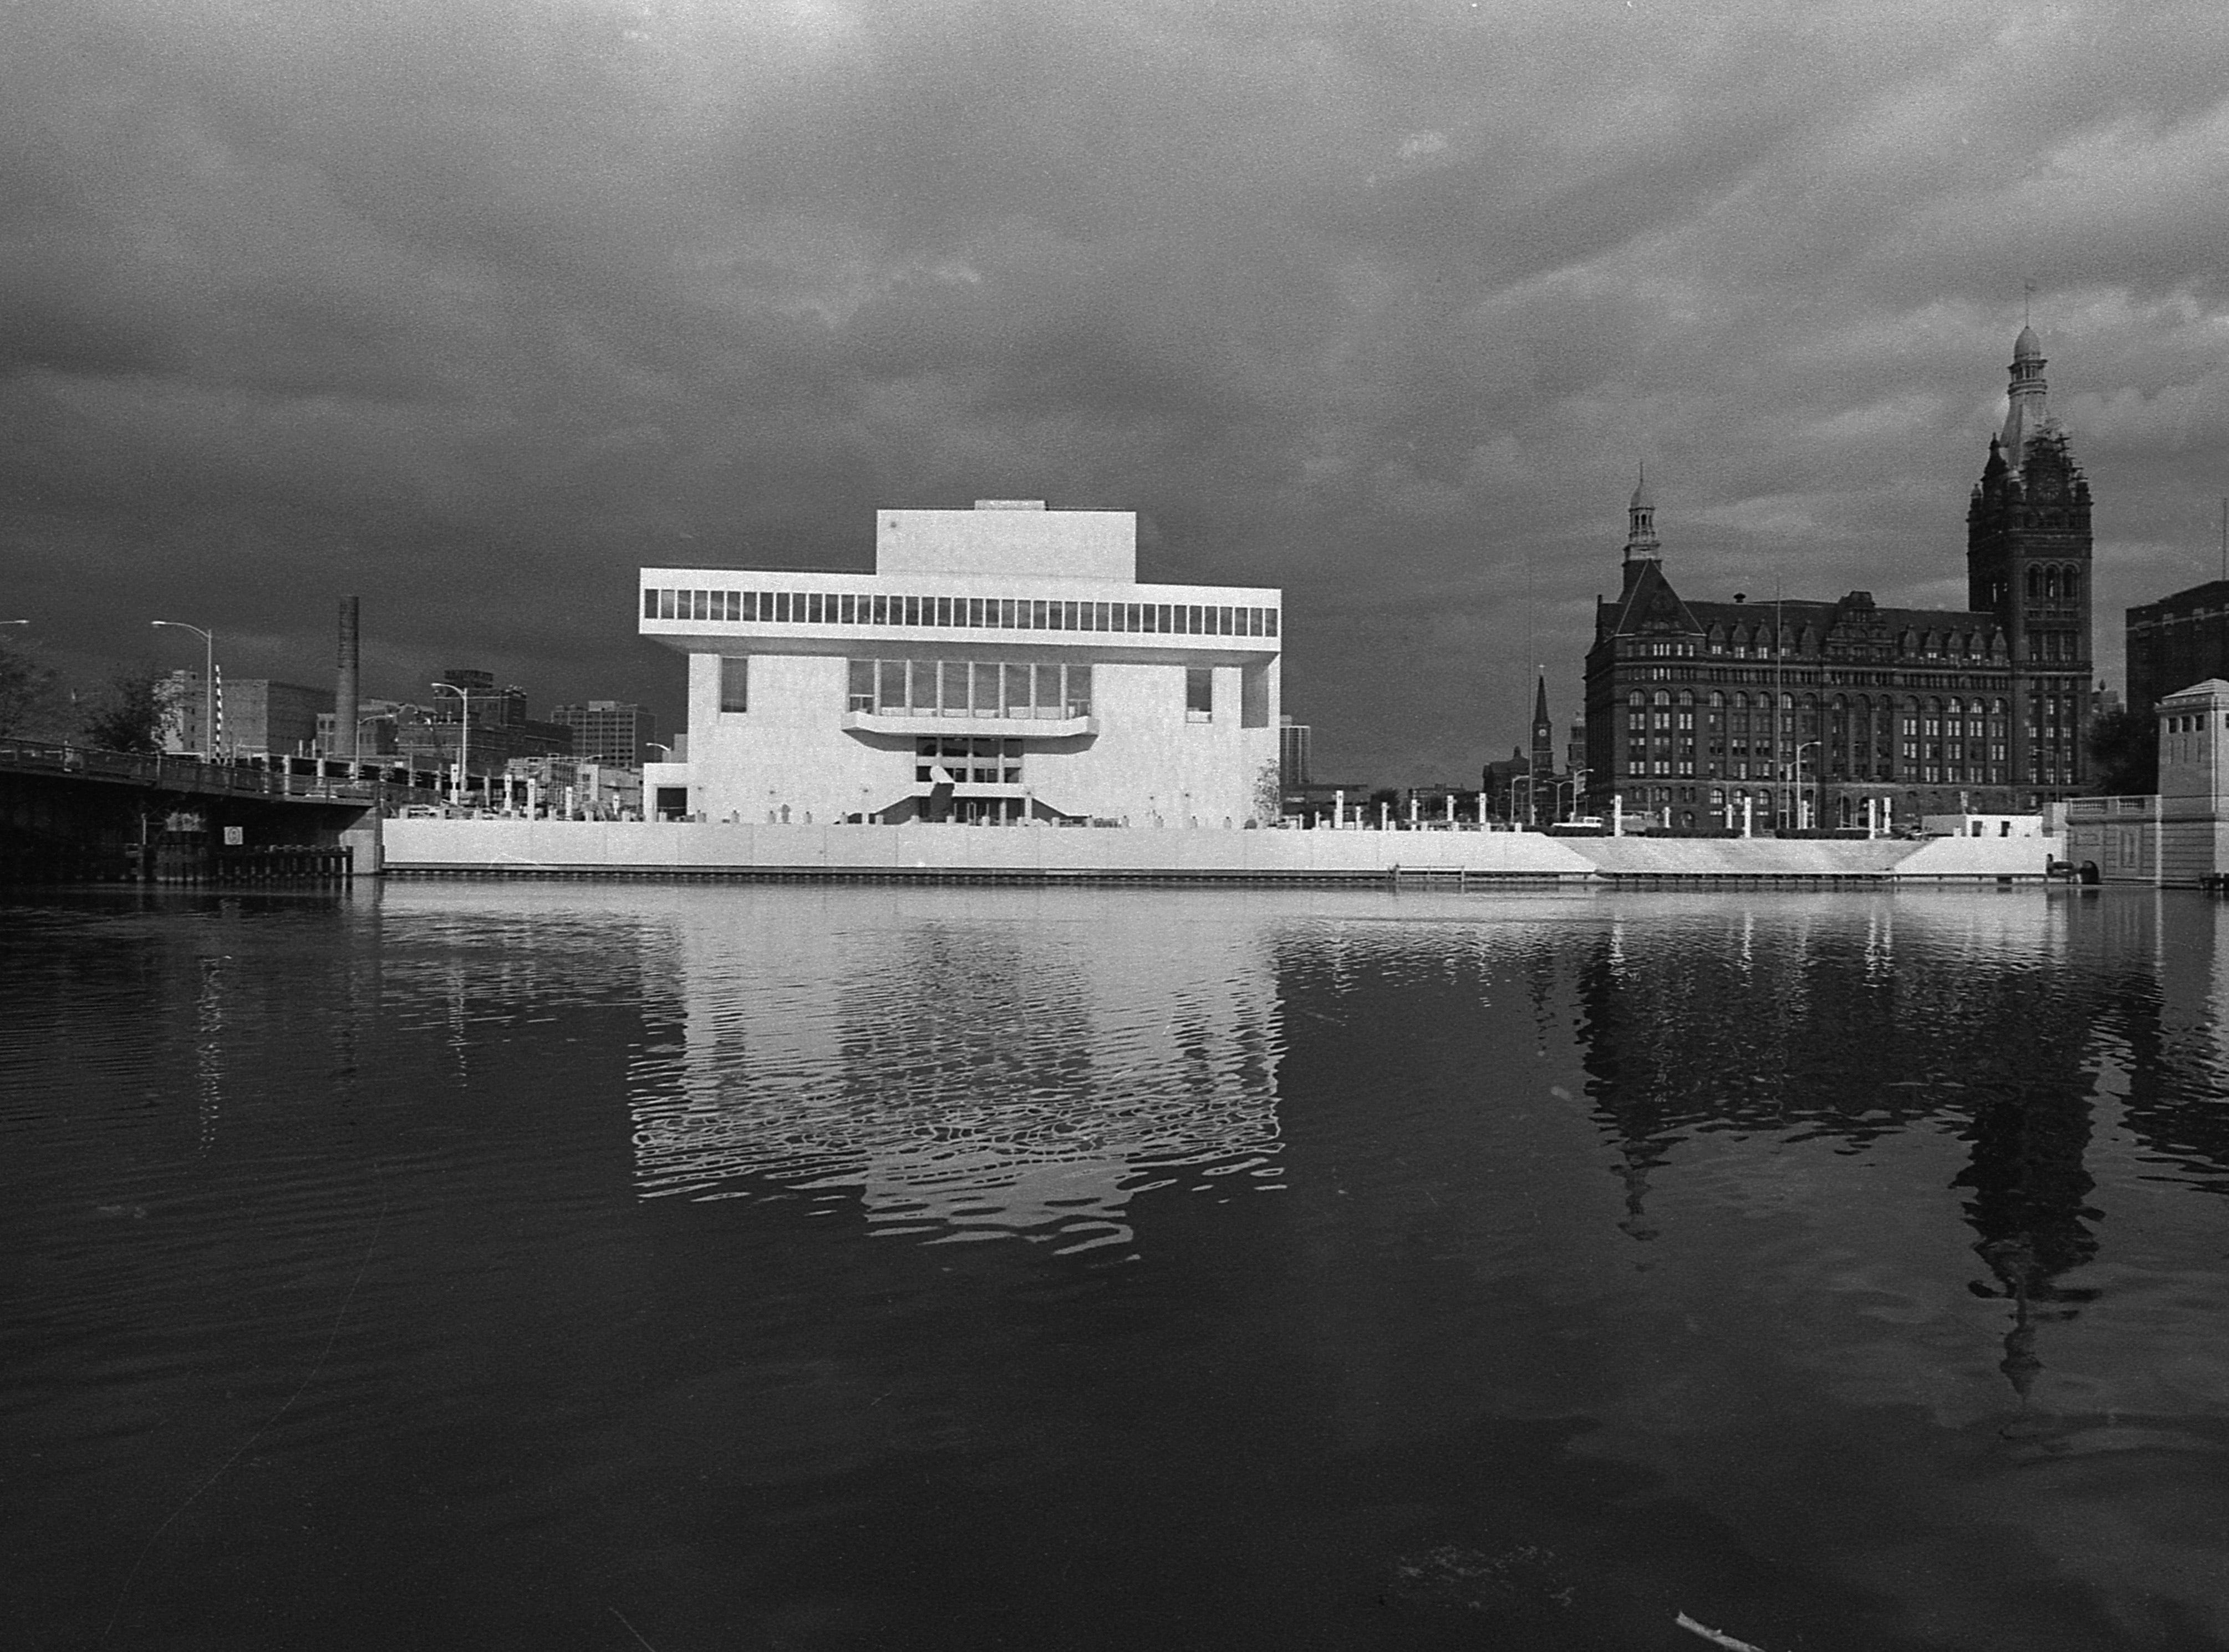 35mm film negative of the new Milwaukee Performing Arts Center (now known as the Marcus Center for the Performing Arts) or PAC at 929 N. Water St. Construction began on June 27, 1966. This photo shows the west side of the exterior from across the river. City Hall is on the right.   Photo was filed 10/13/1969 . Neg #69561 exterior, building, music, performance, stage, theater, Uihlein Hall, Todd Wehr hall, Peck Pavilion.